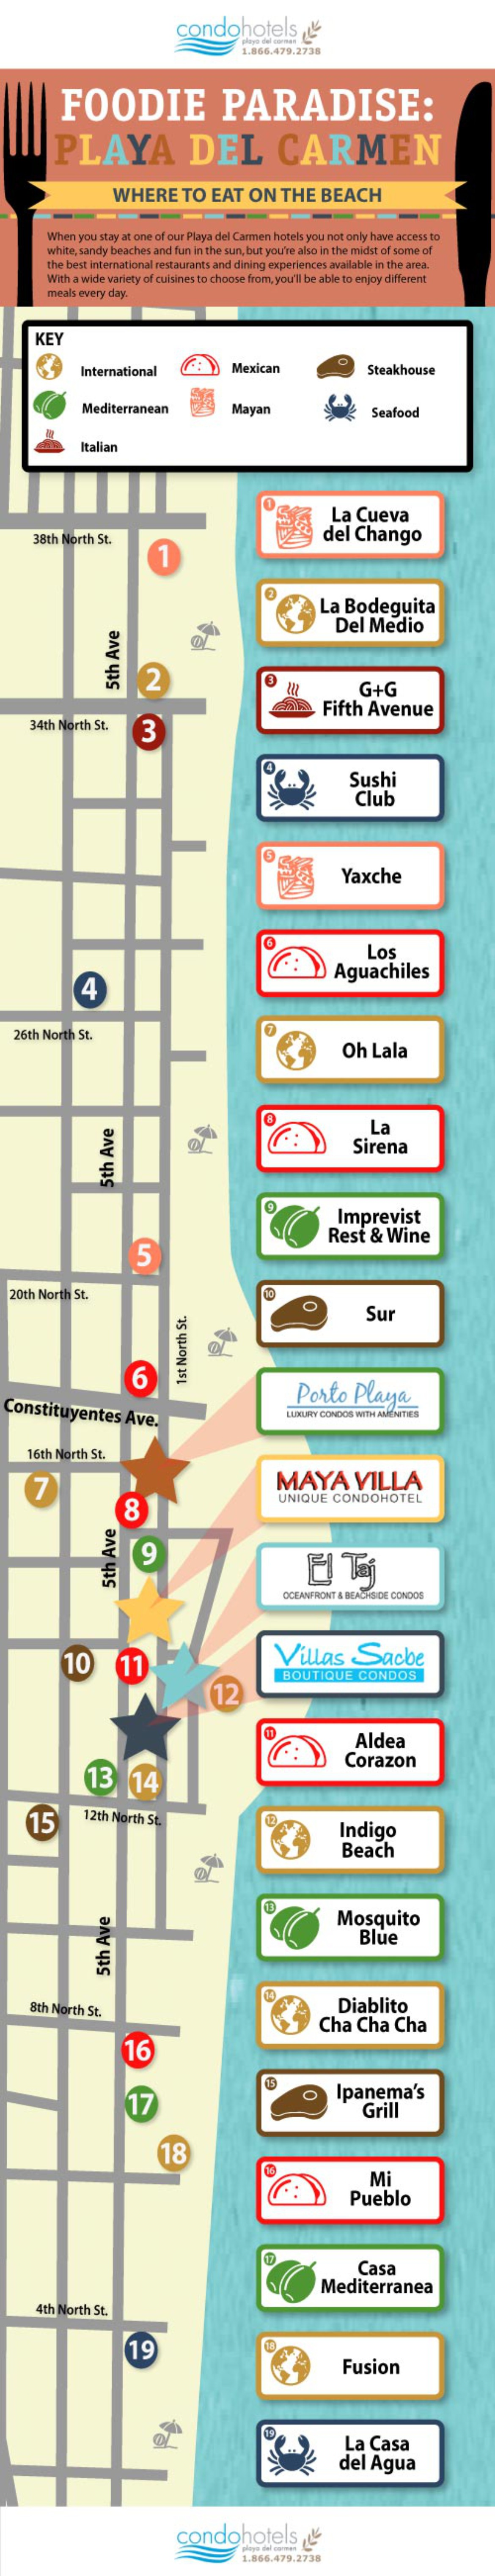 restaurants-in-playa-del-carmen